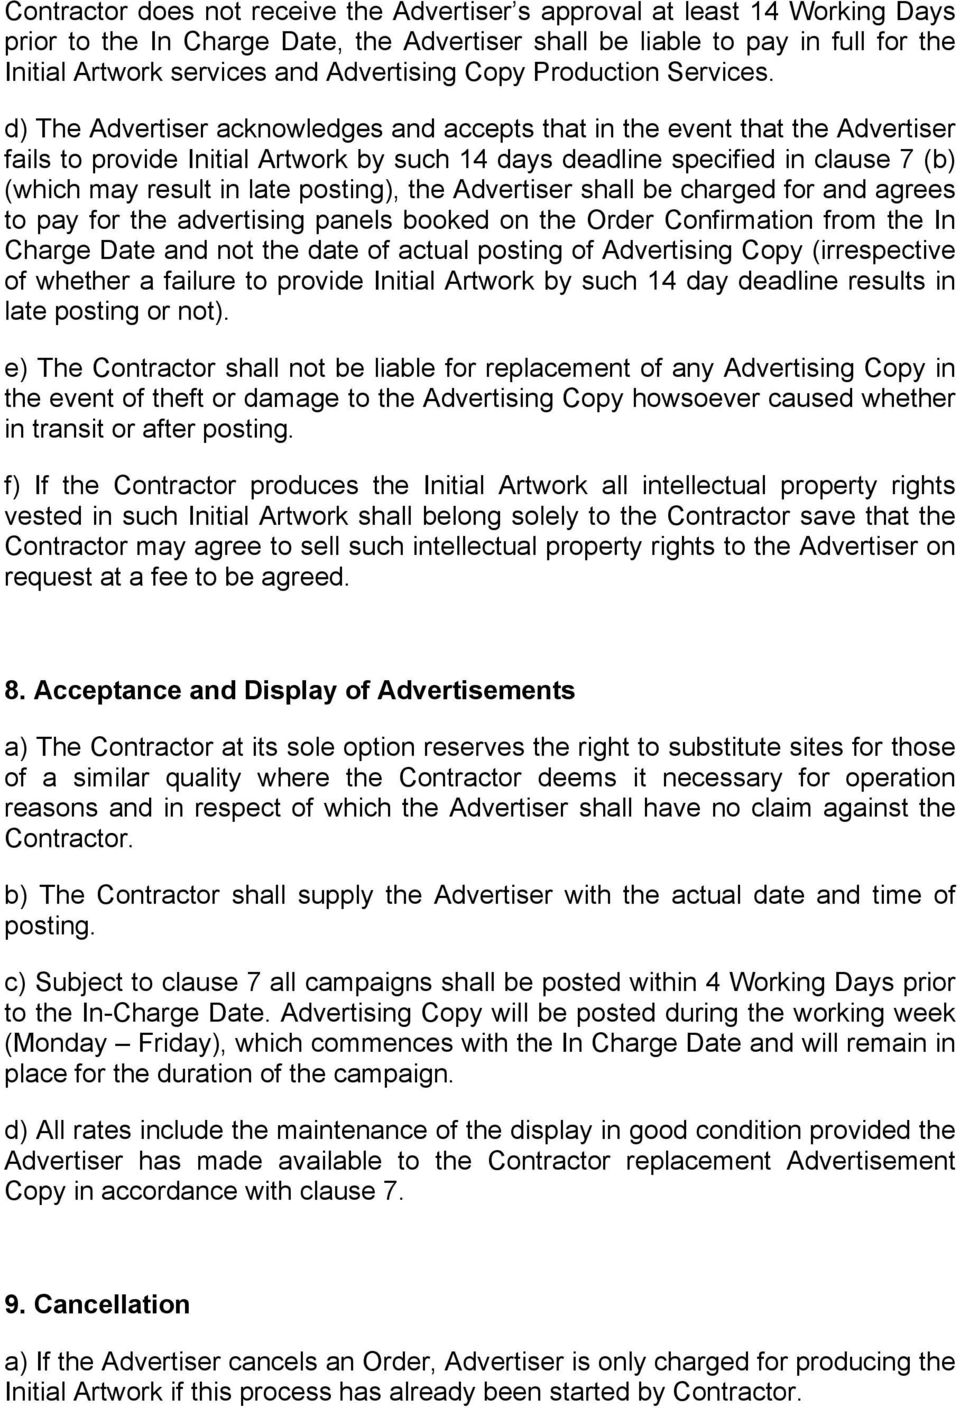 d) The Advertiser acknowledges and accepts that in the event that the Advertiser fails to provide Initial Artwork by such 14 days deadline specified in clause 7 (b) (which may result in late